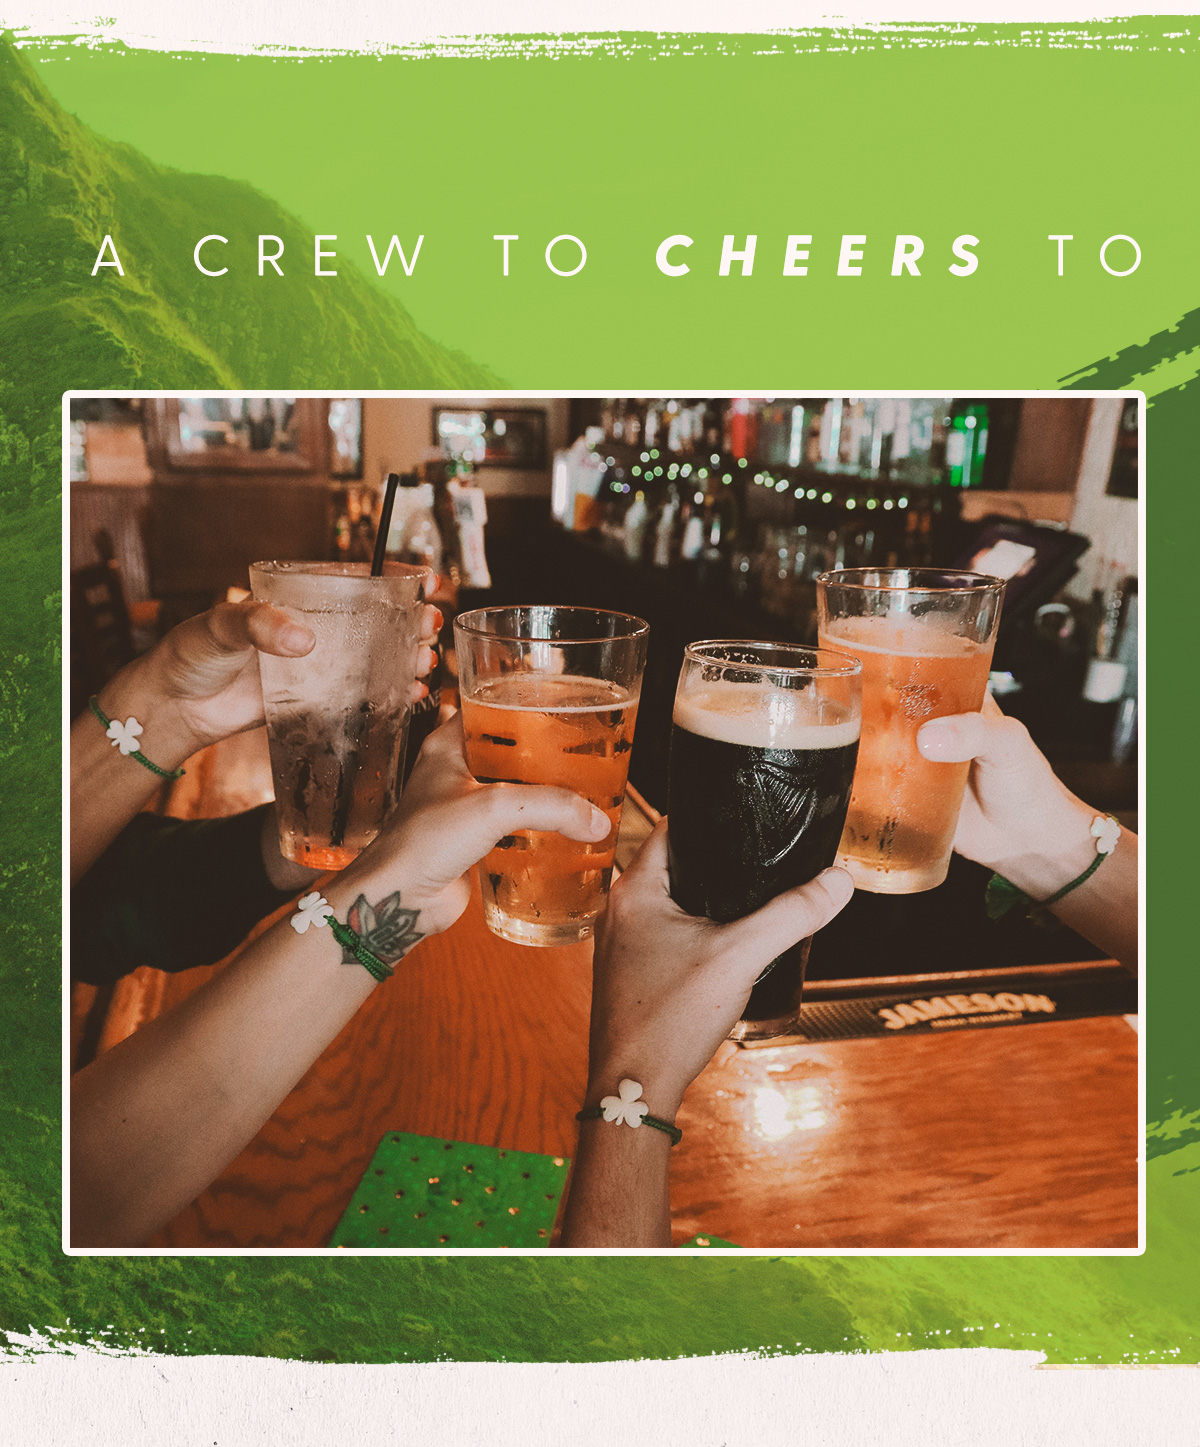 A crew to cheers to